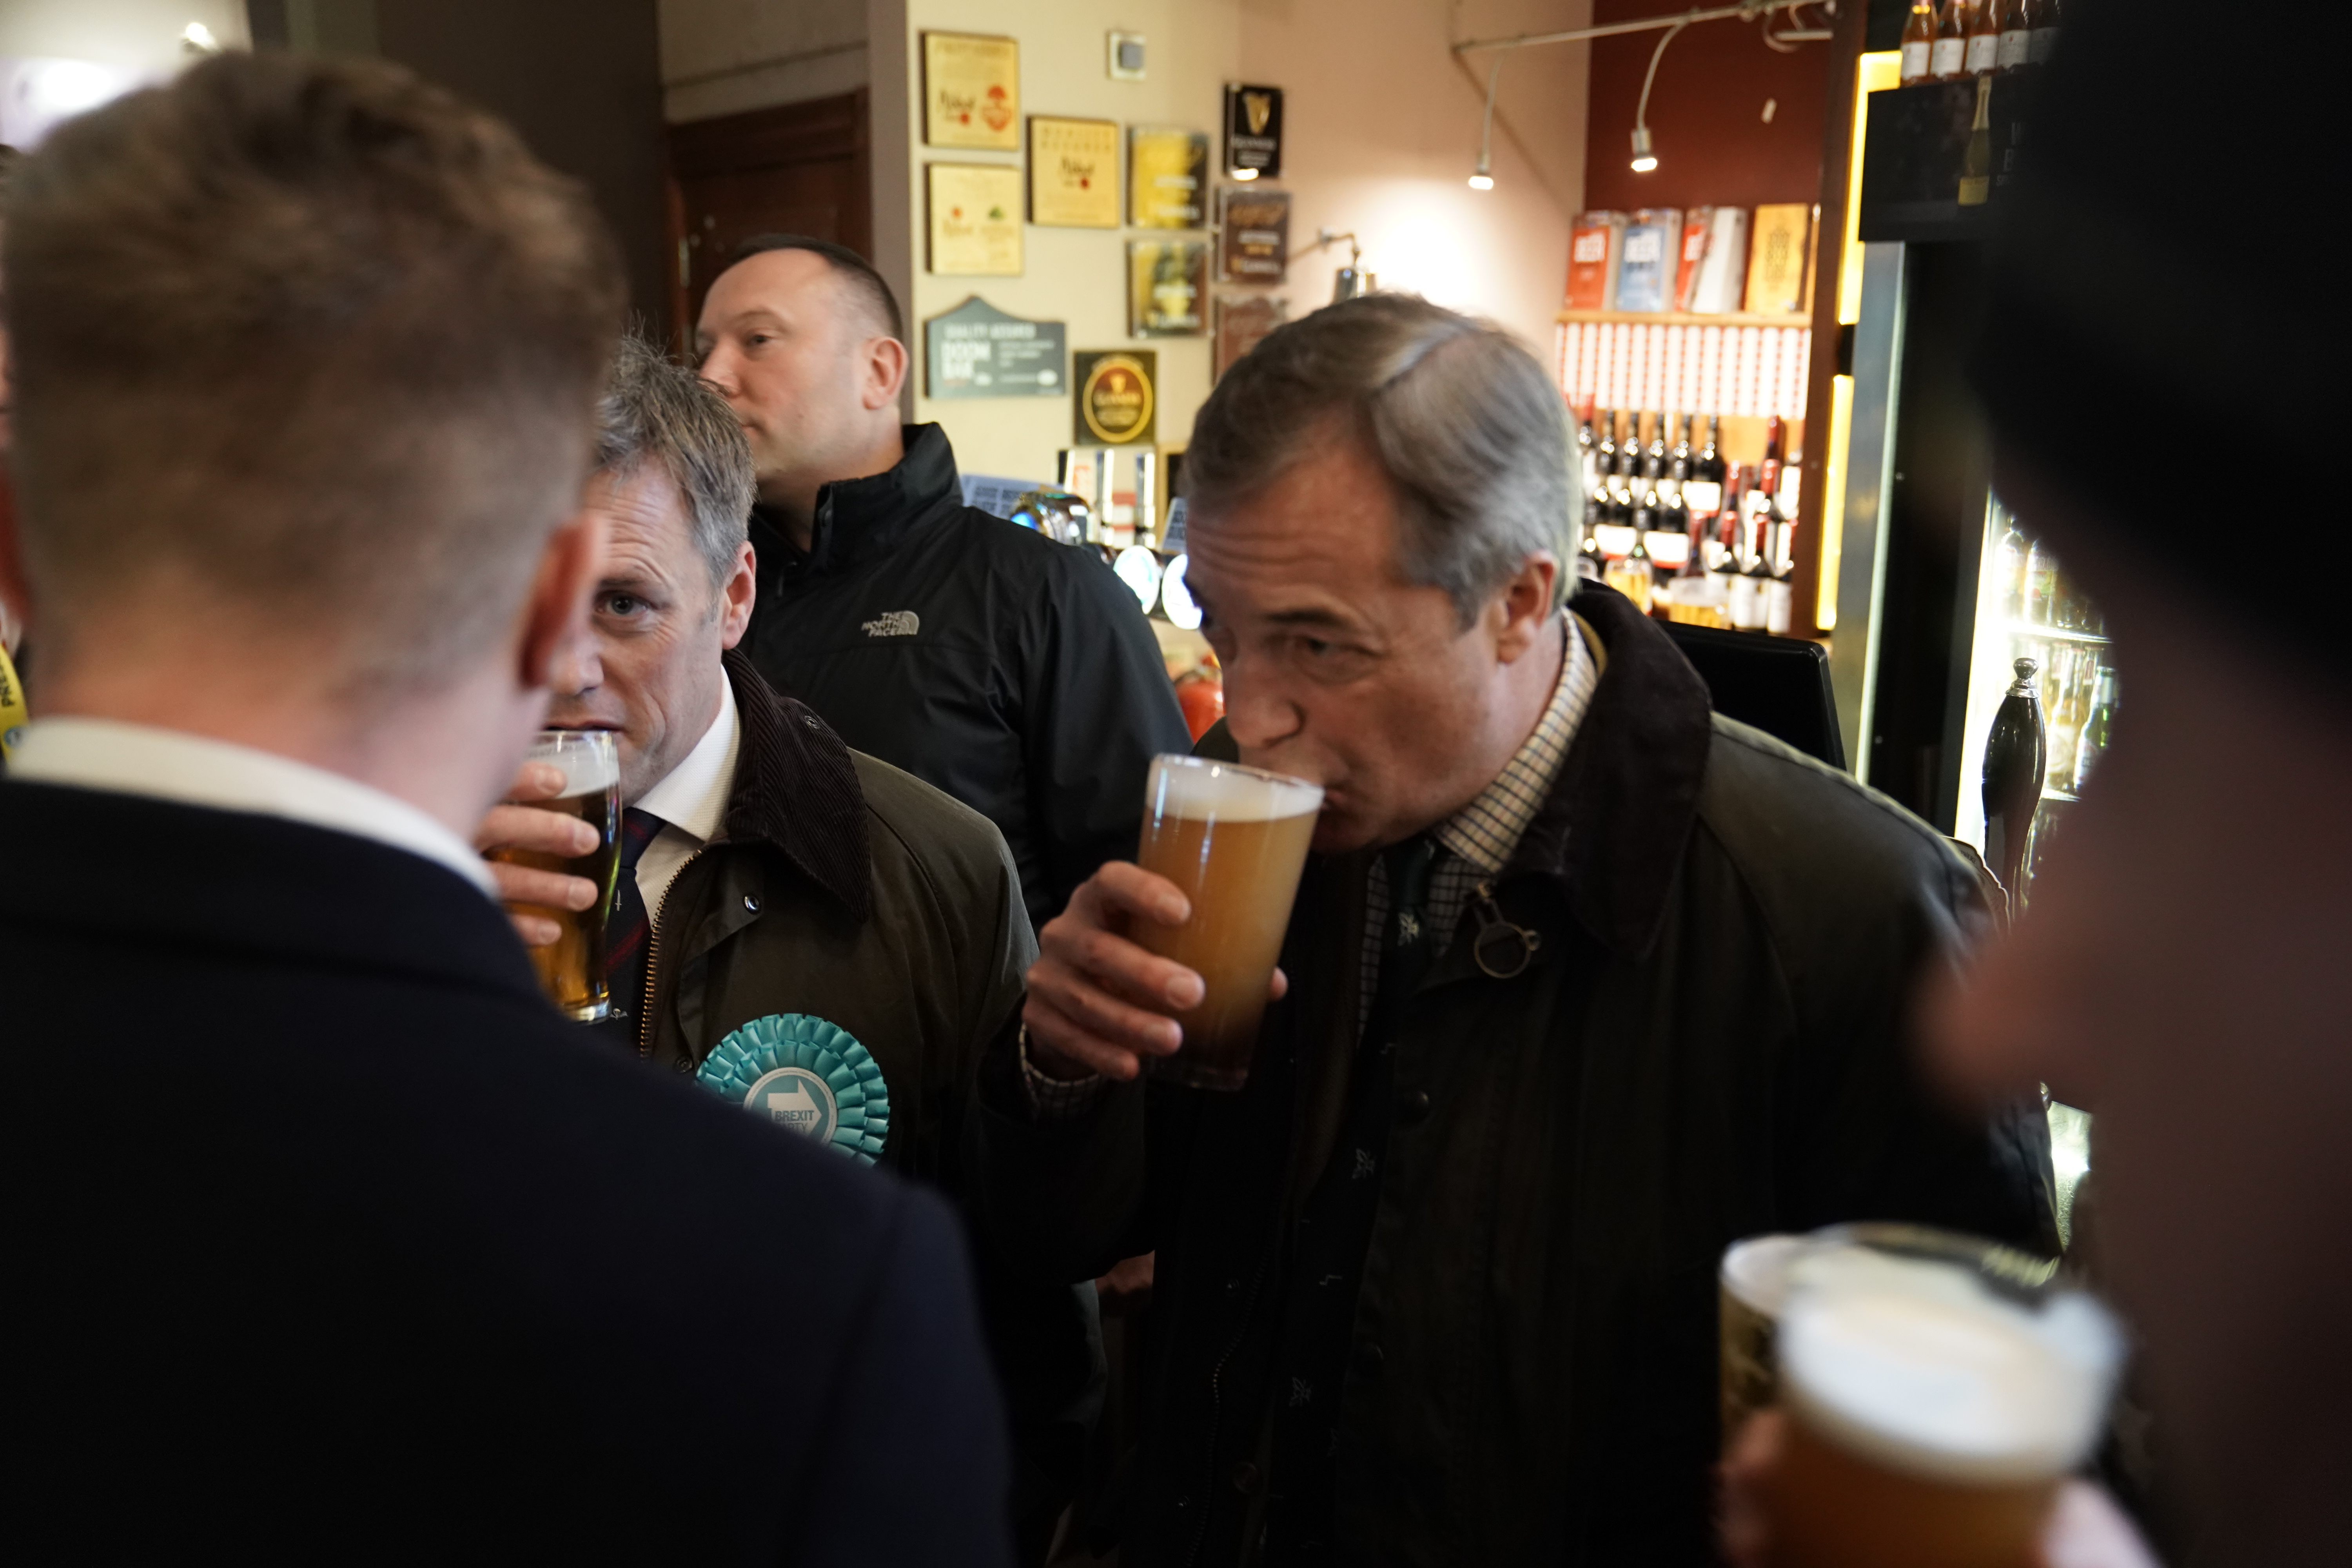 Brexit Party leader Nigel Farage sips a pint in a pub in Hull, East Yorkshire, whilst on the General Election campaign trail.